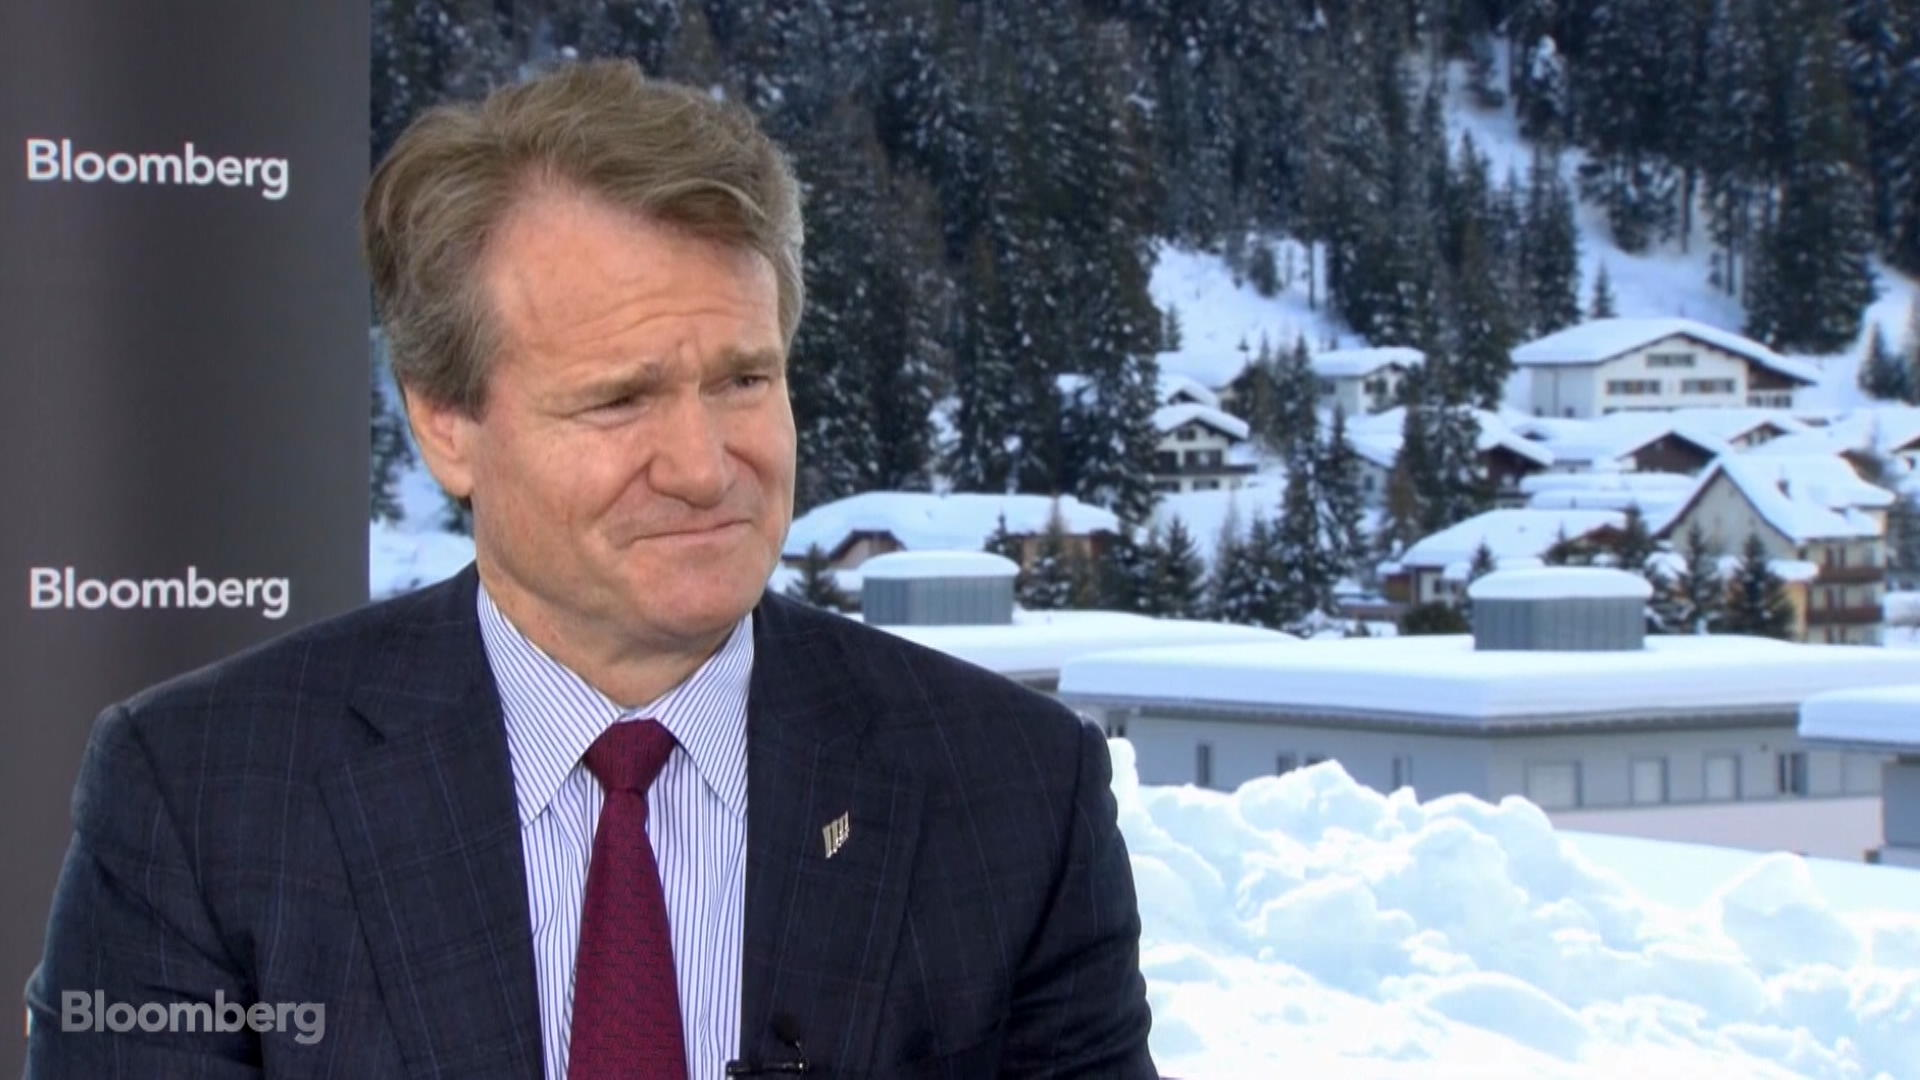 Moynihan Says There's a '50-50 Chance' Next BofA CEO Is a Woman